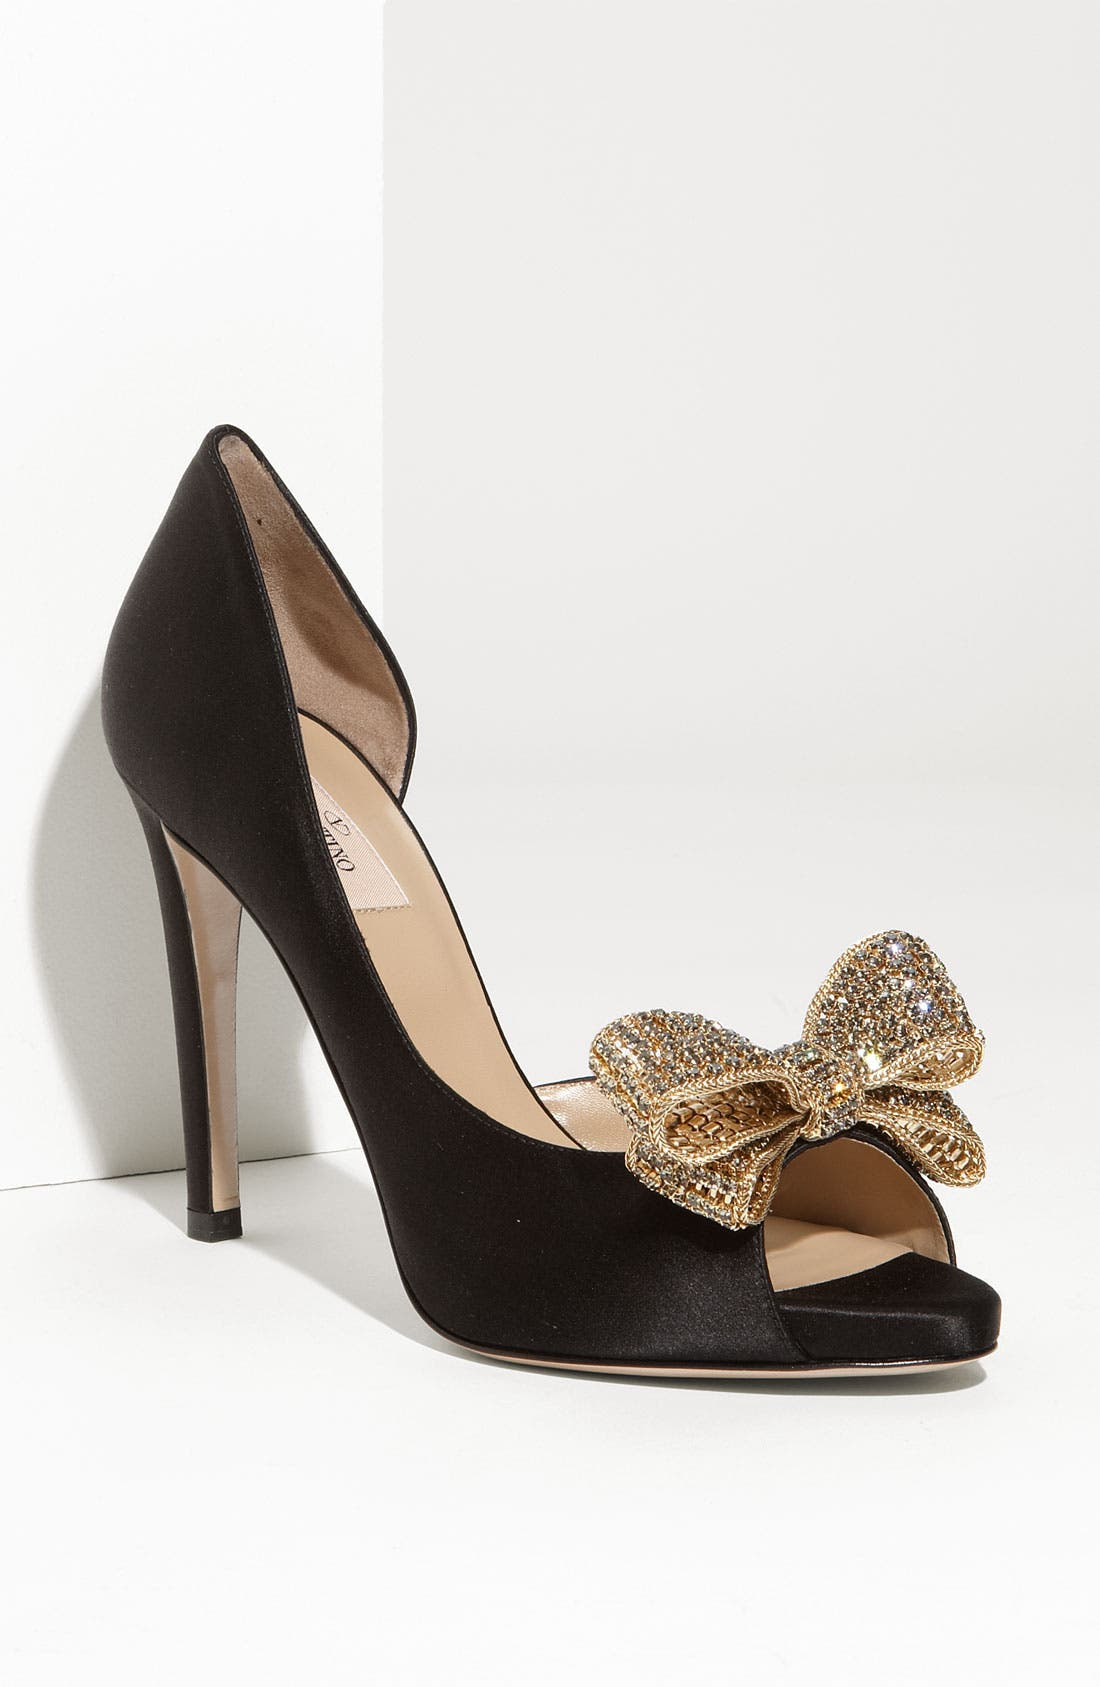 Main Image - Valentino Jewelry Couture Bow d'Orsay Pump